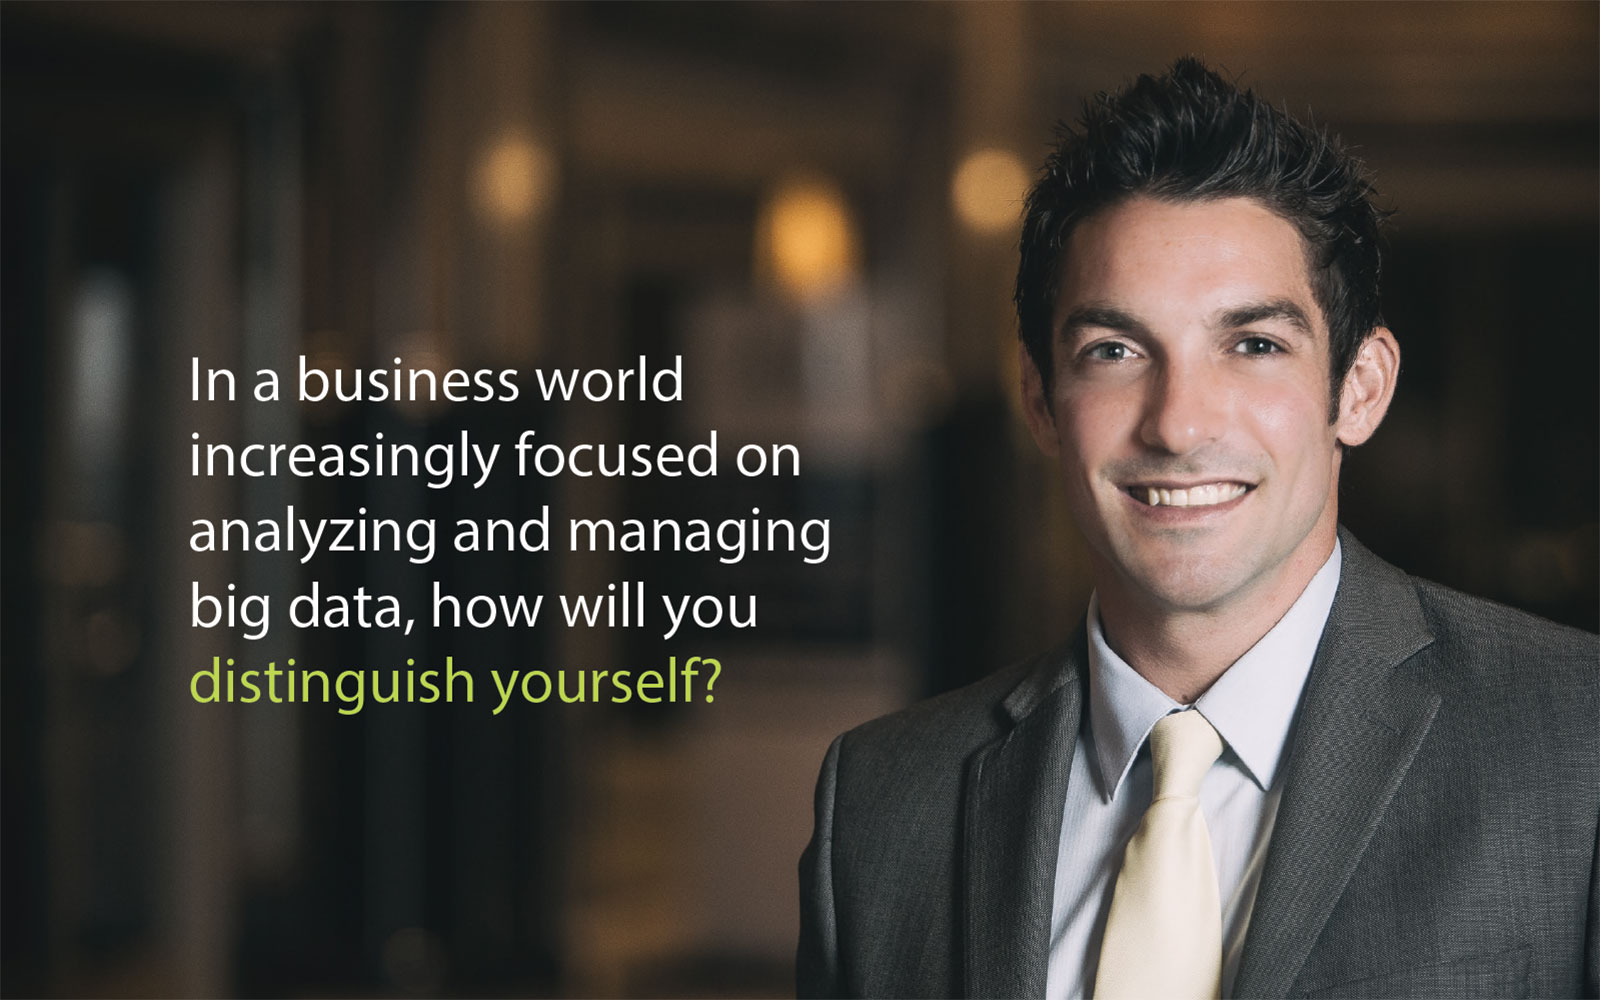 In a business world increasingly focused on analyzing and managing big data, how will you distinguish yourself?